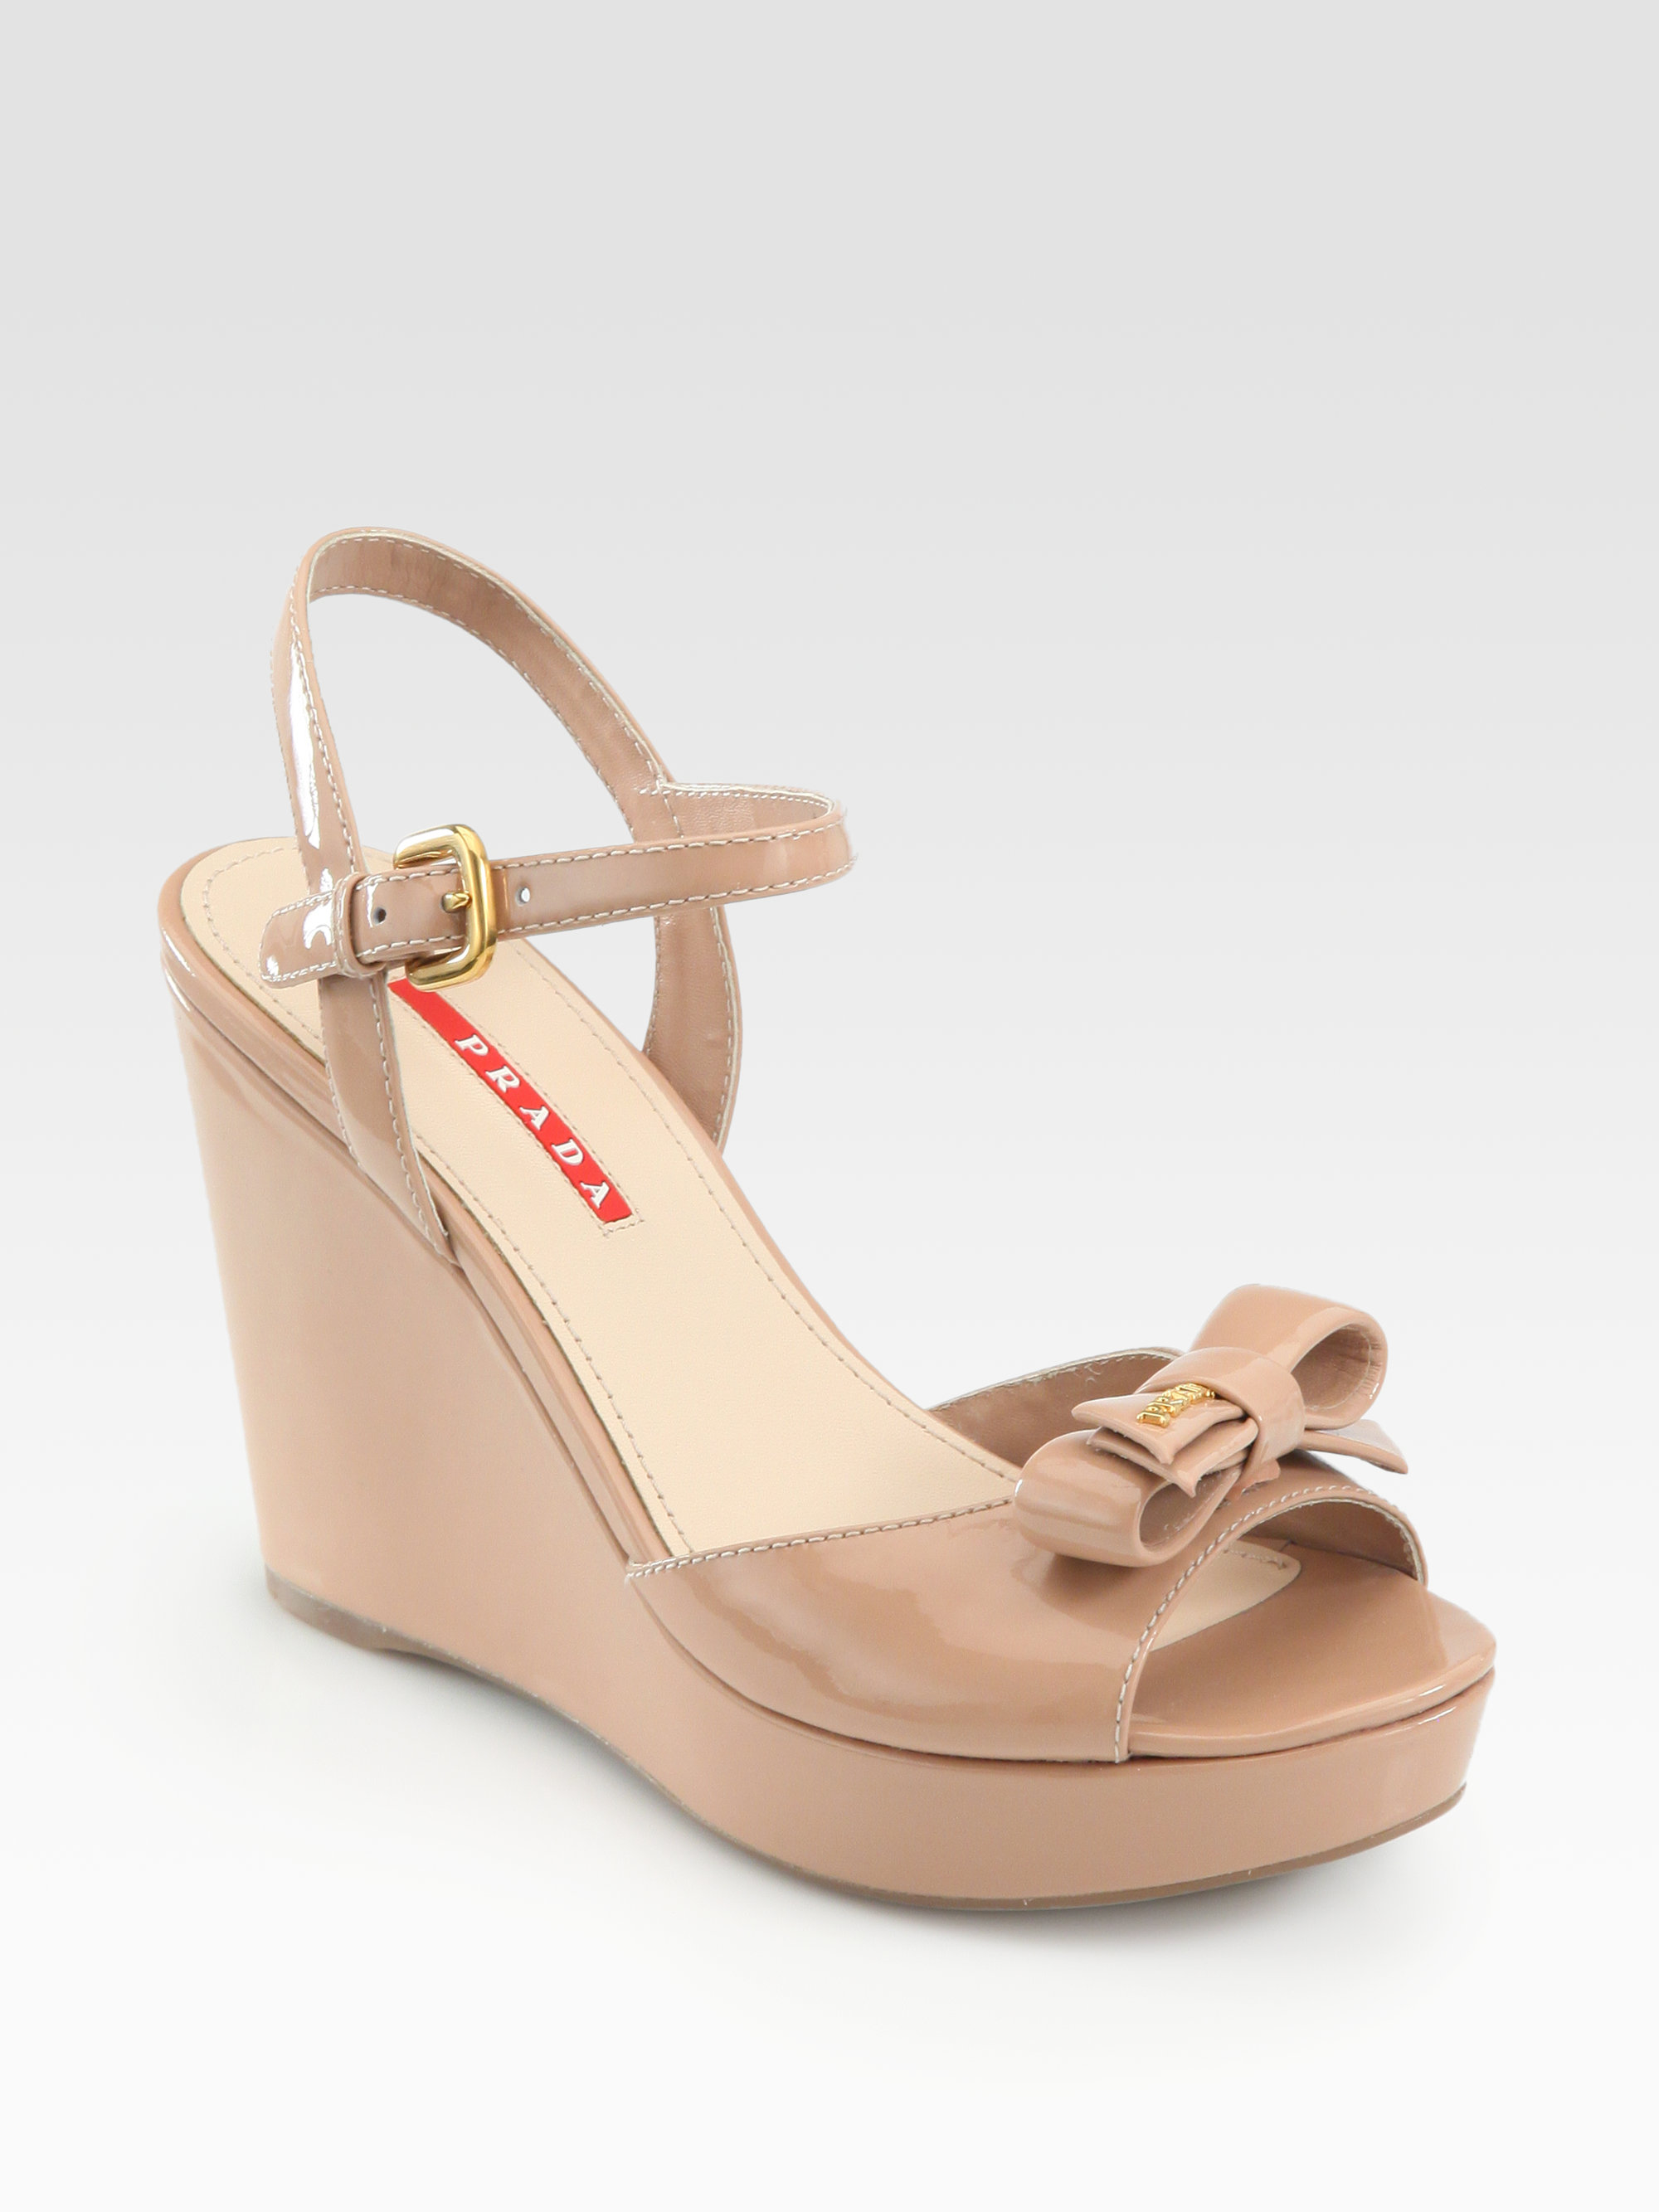 750936153c Prada Patent Leather Bow Wedge Sandals in Natural - Lyst